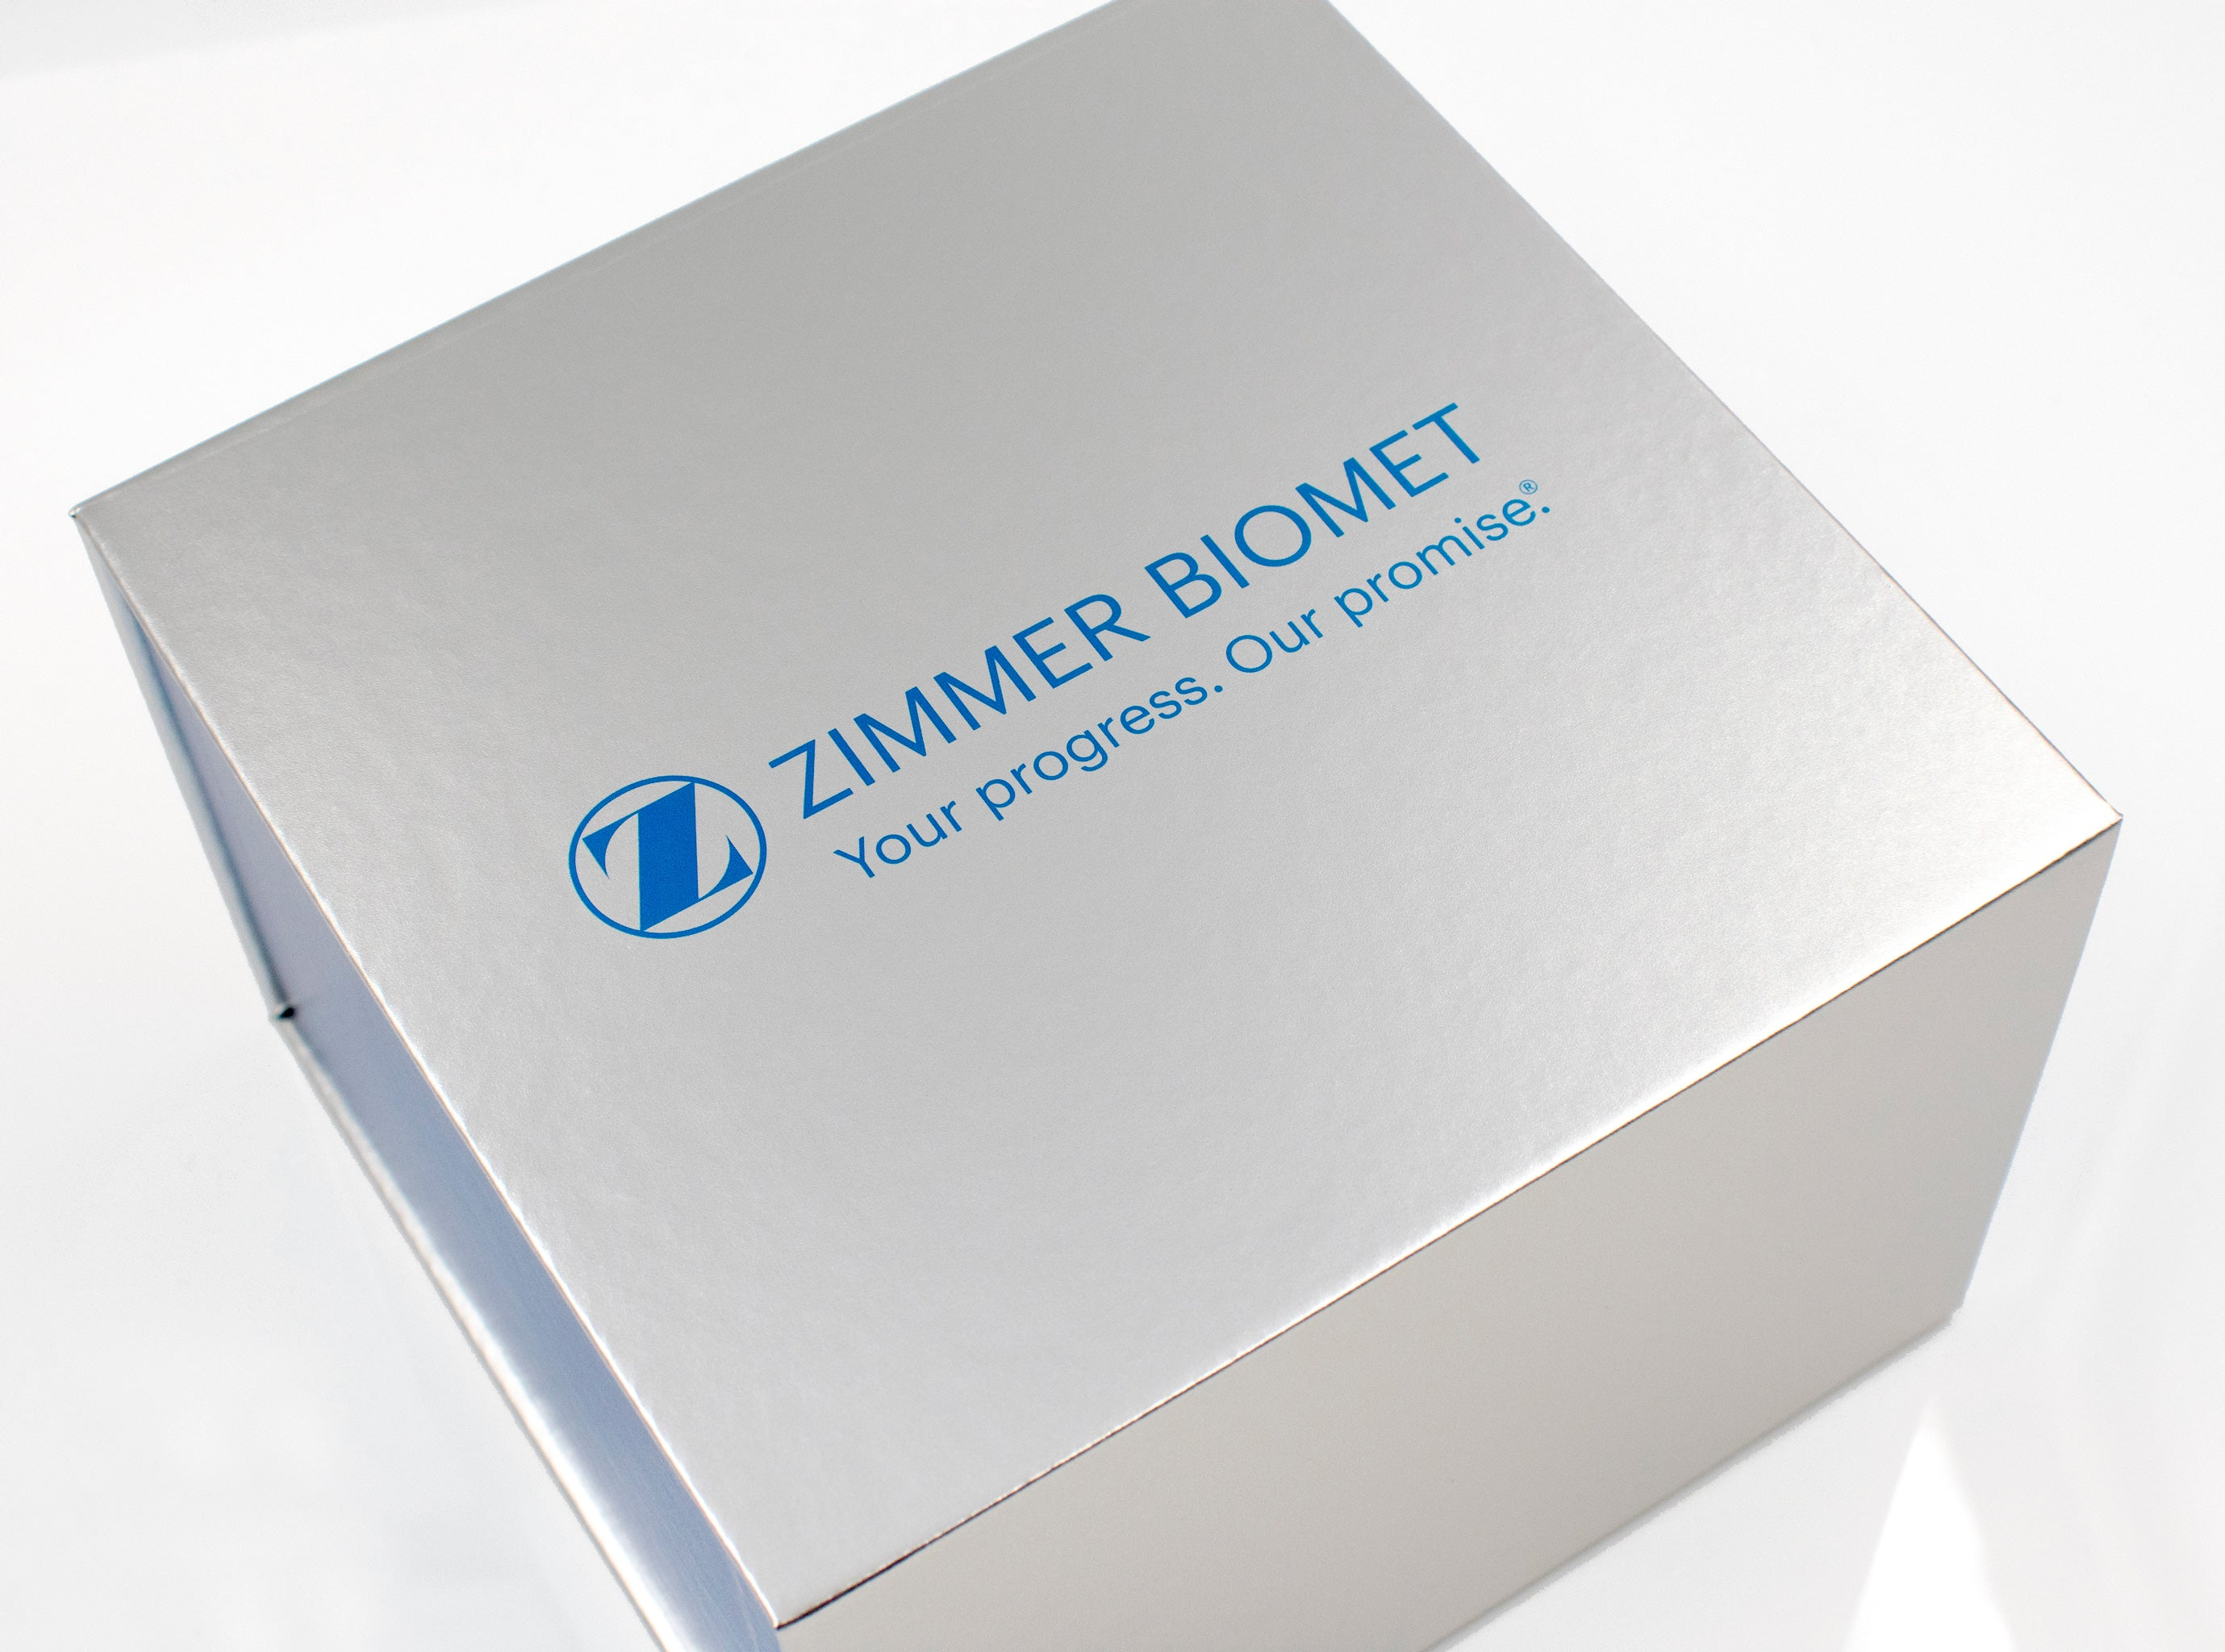 Zimmer Biomet Metal Corporate Invitation In Box Top1